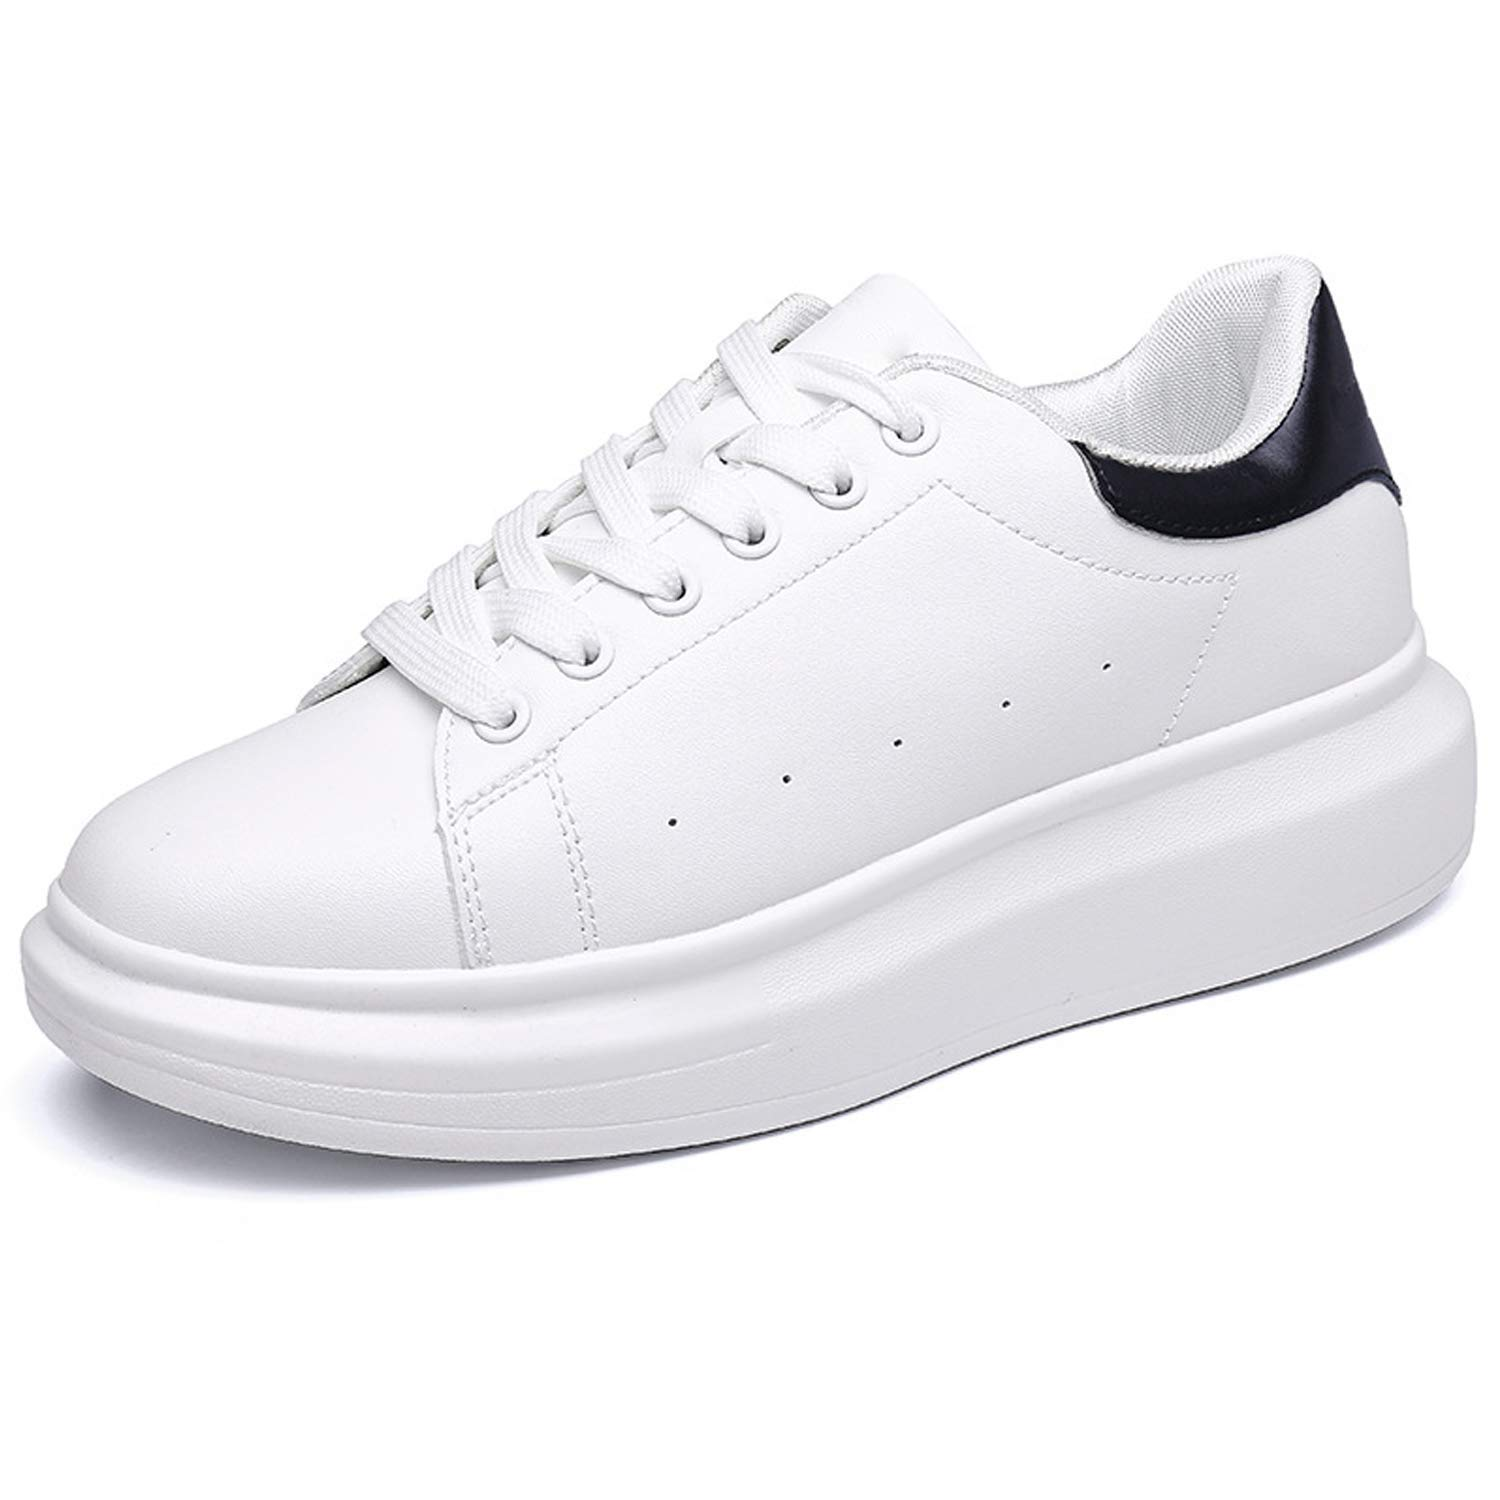 PrasKing White Canvas Casual Sneaker Shoes